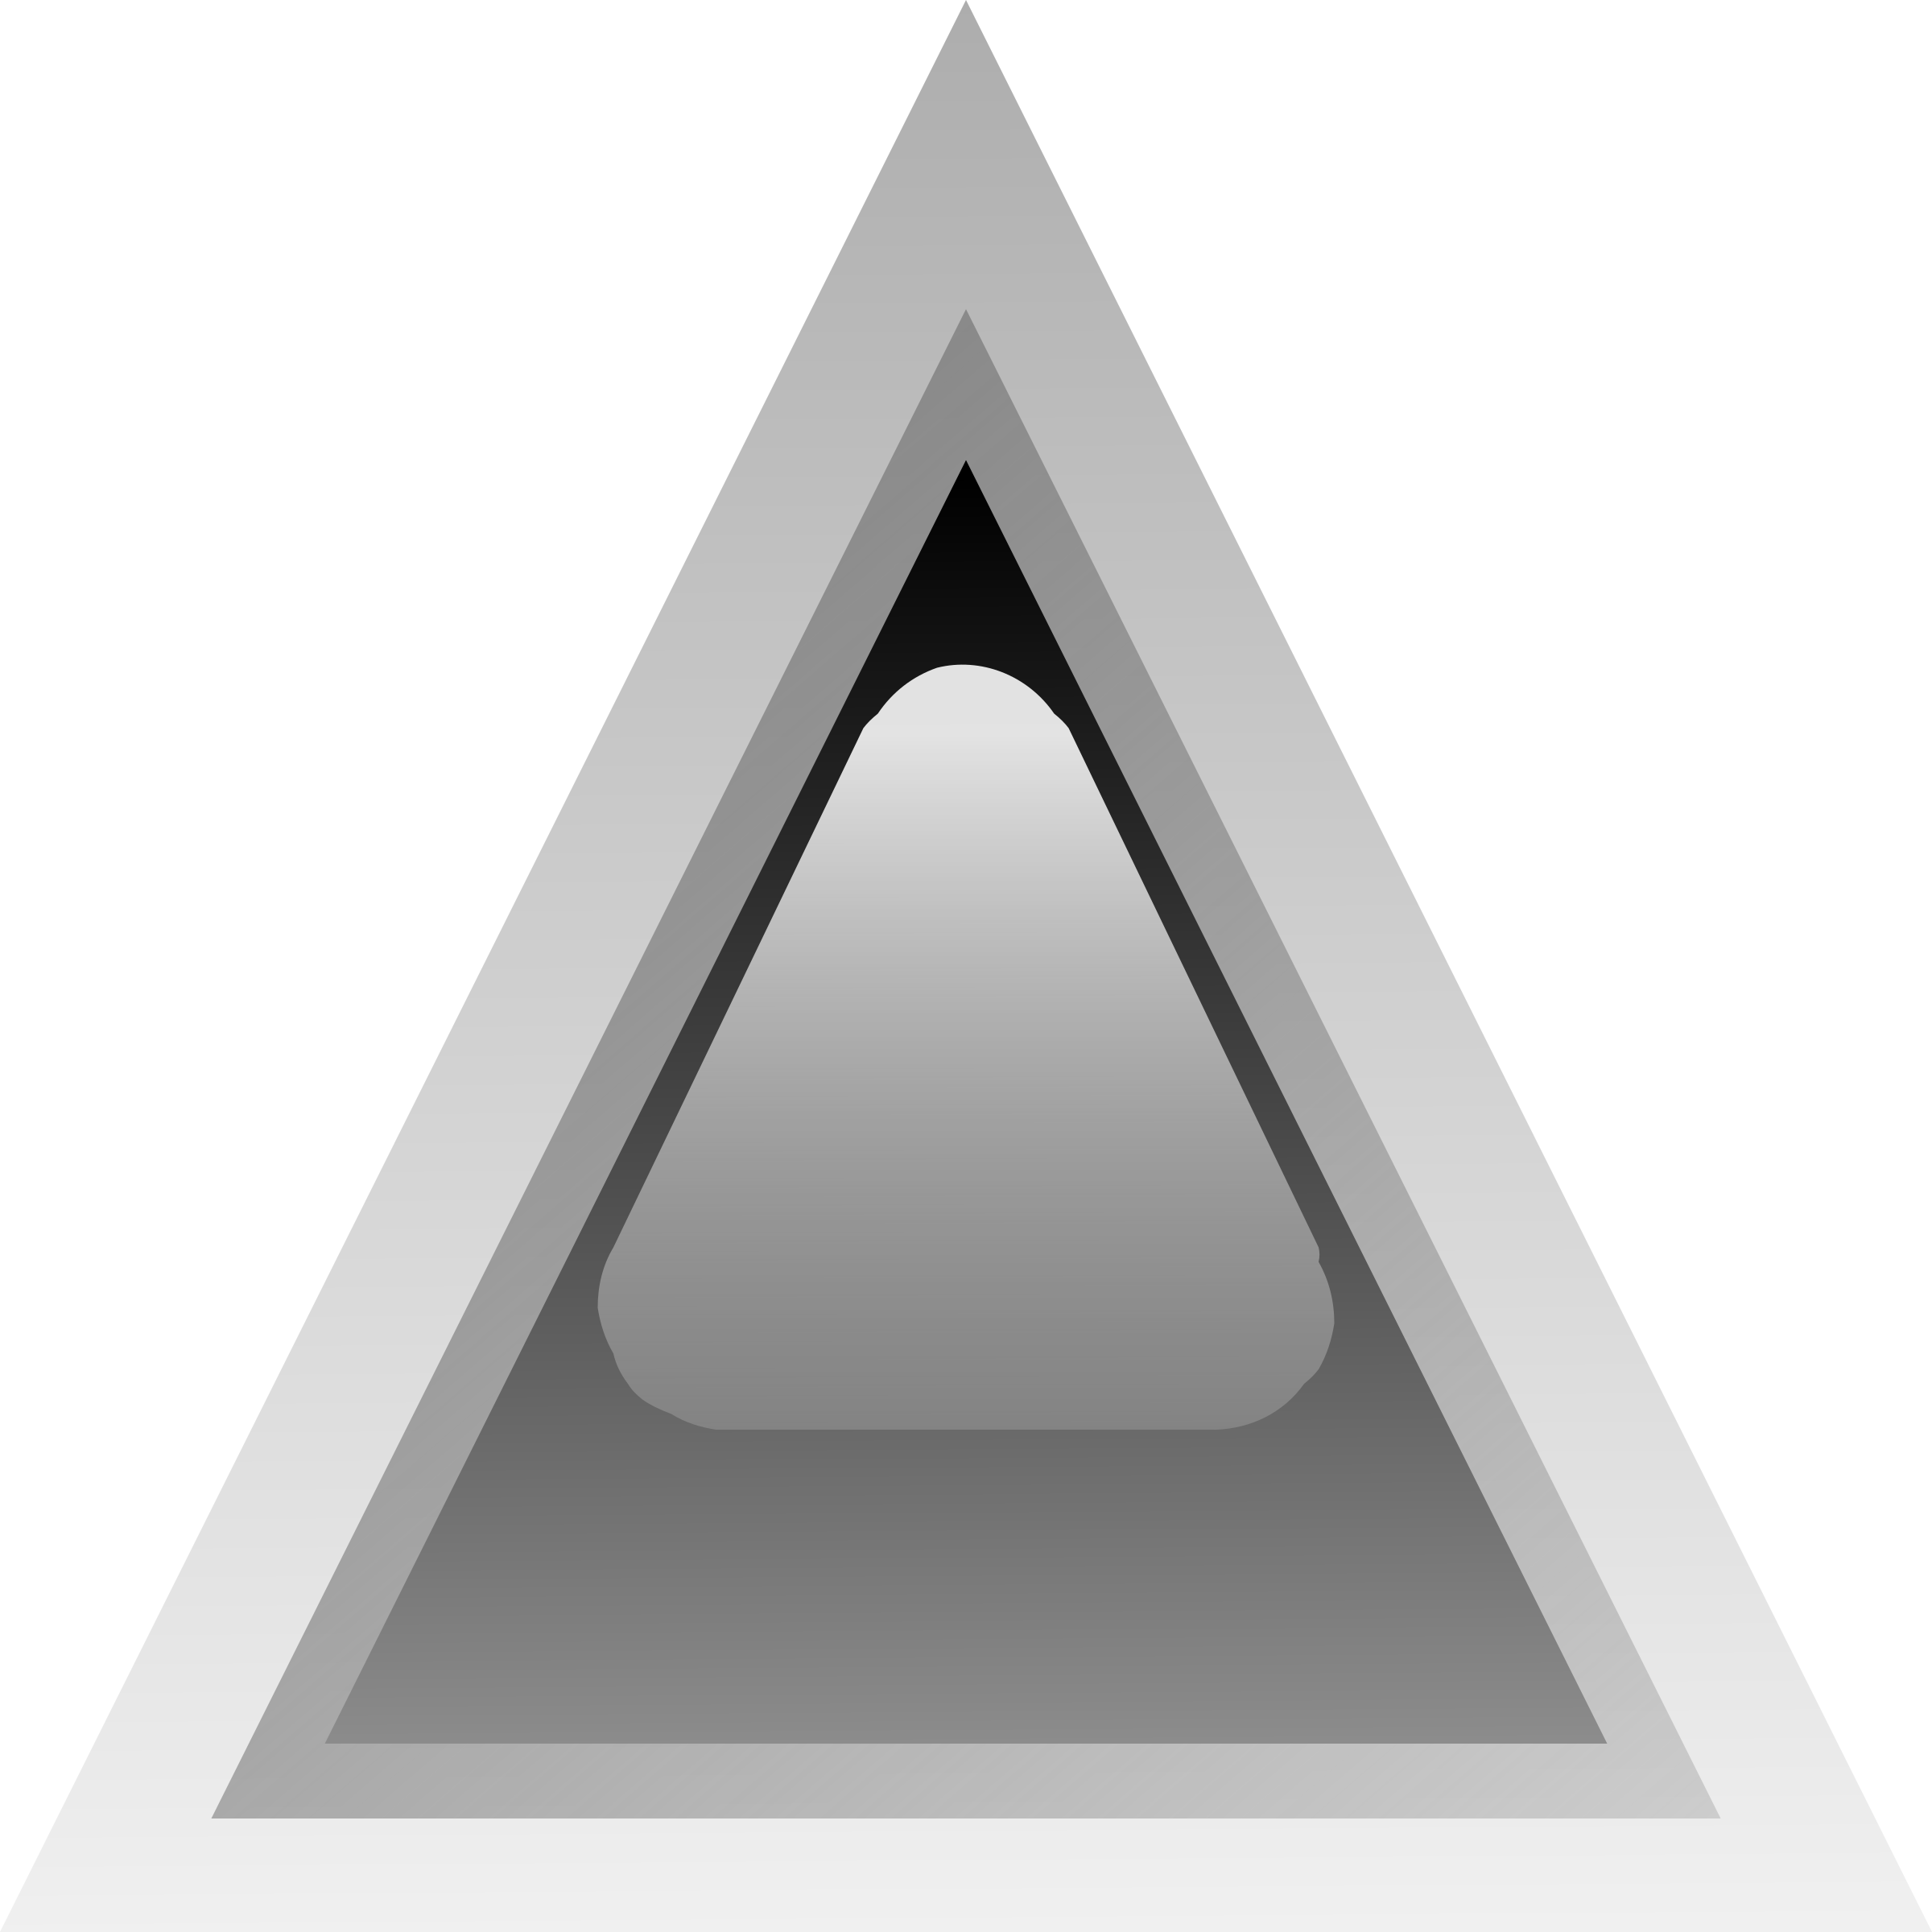 led triangular black by Anonymous